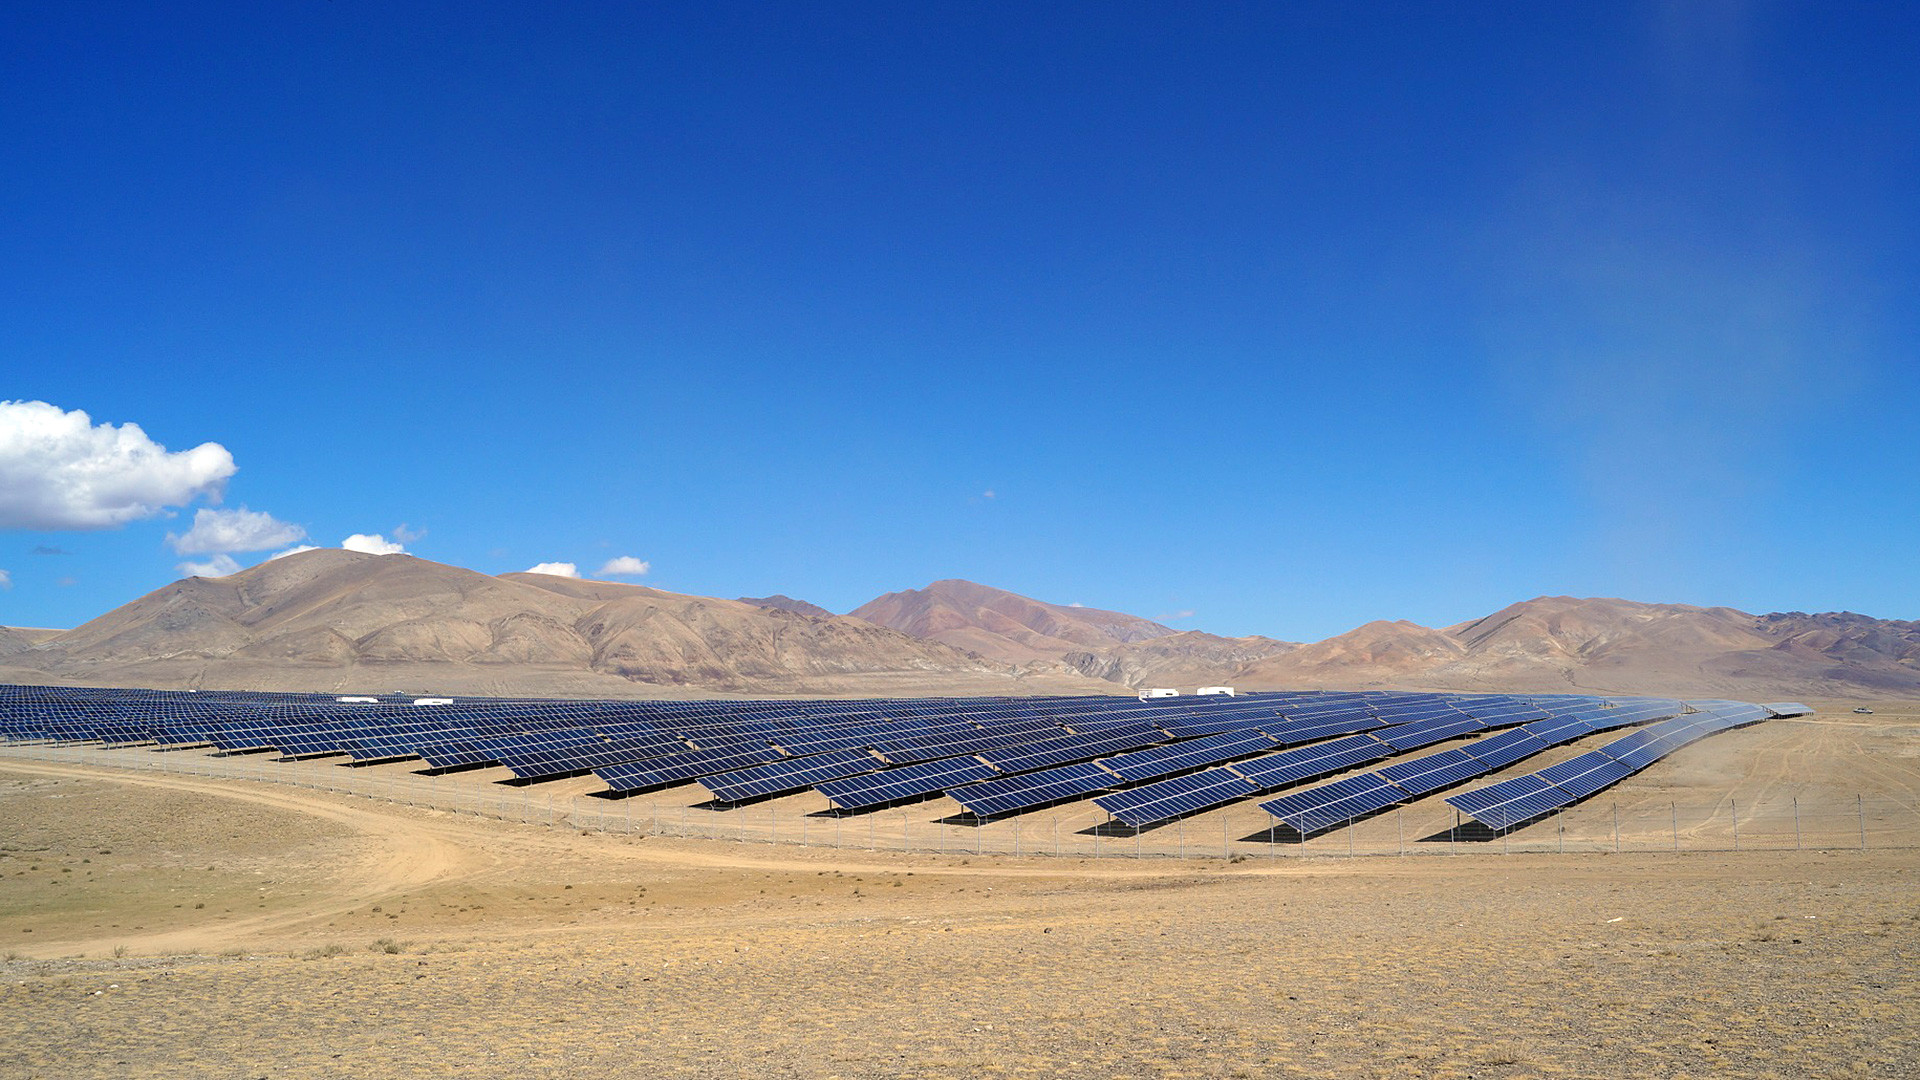 Kosh-Agachskaya solar power plant in the Republic of Altai was opened in 2014.